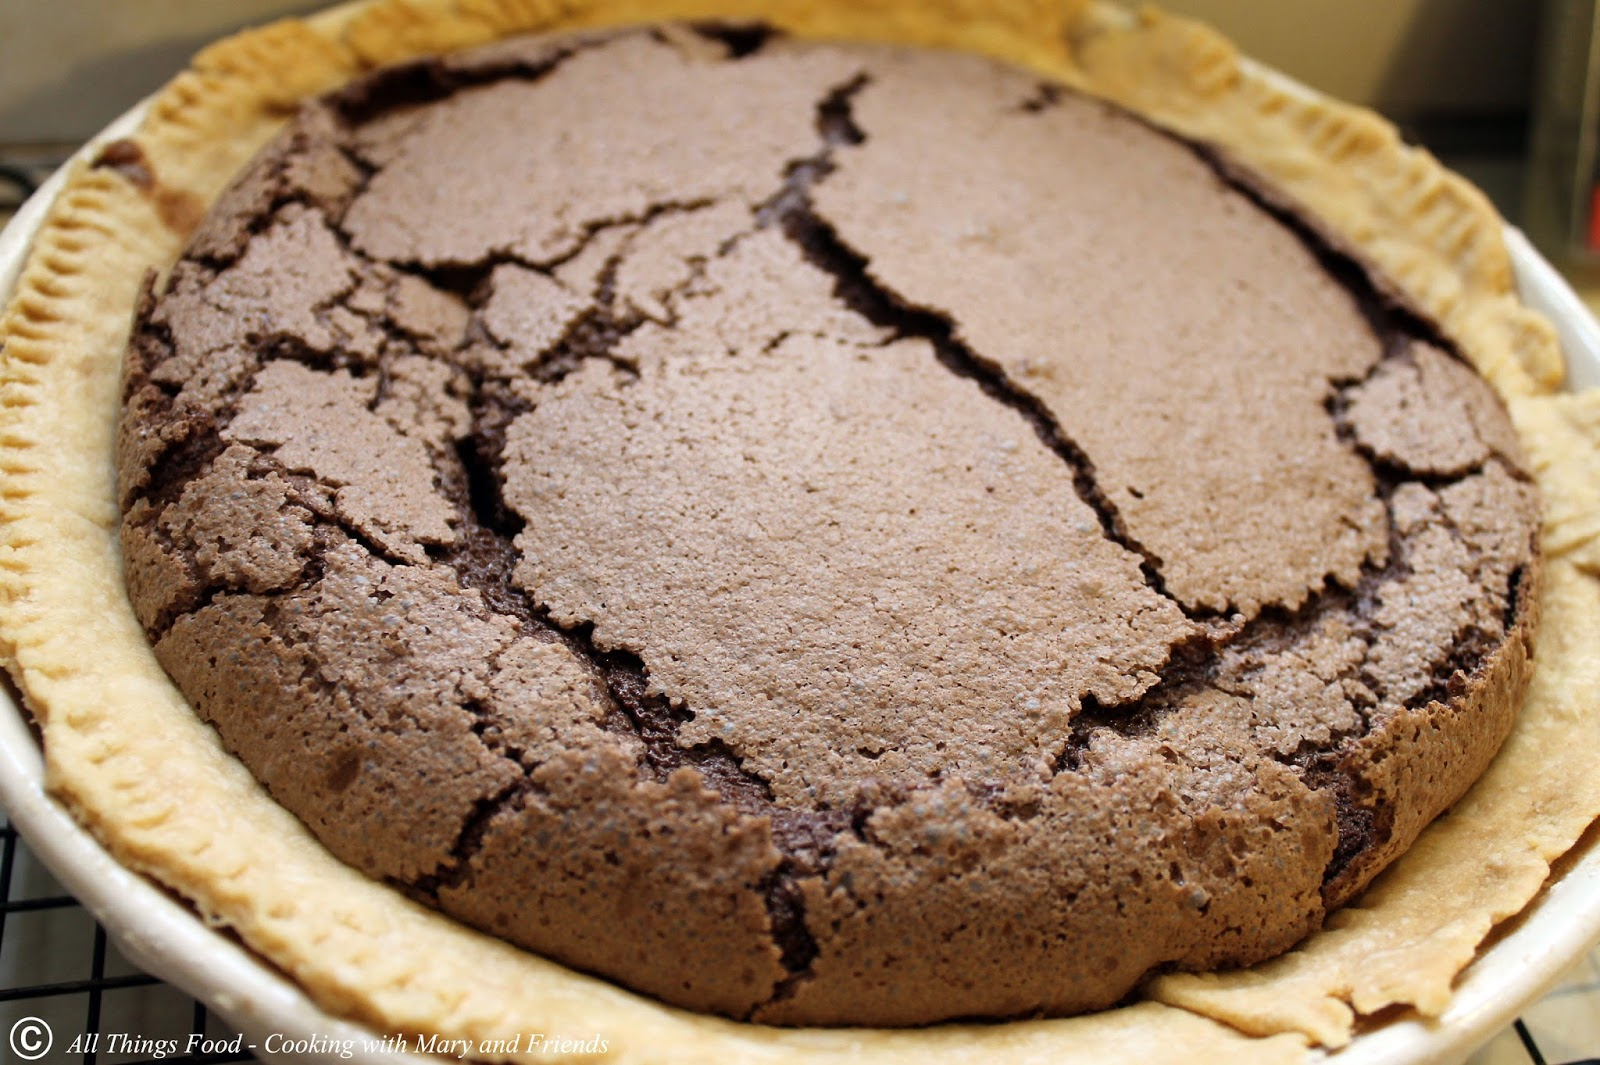 Cooking With Mary and Friends: Chocolate Chess Pie